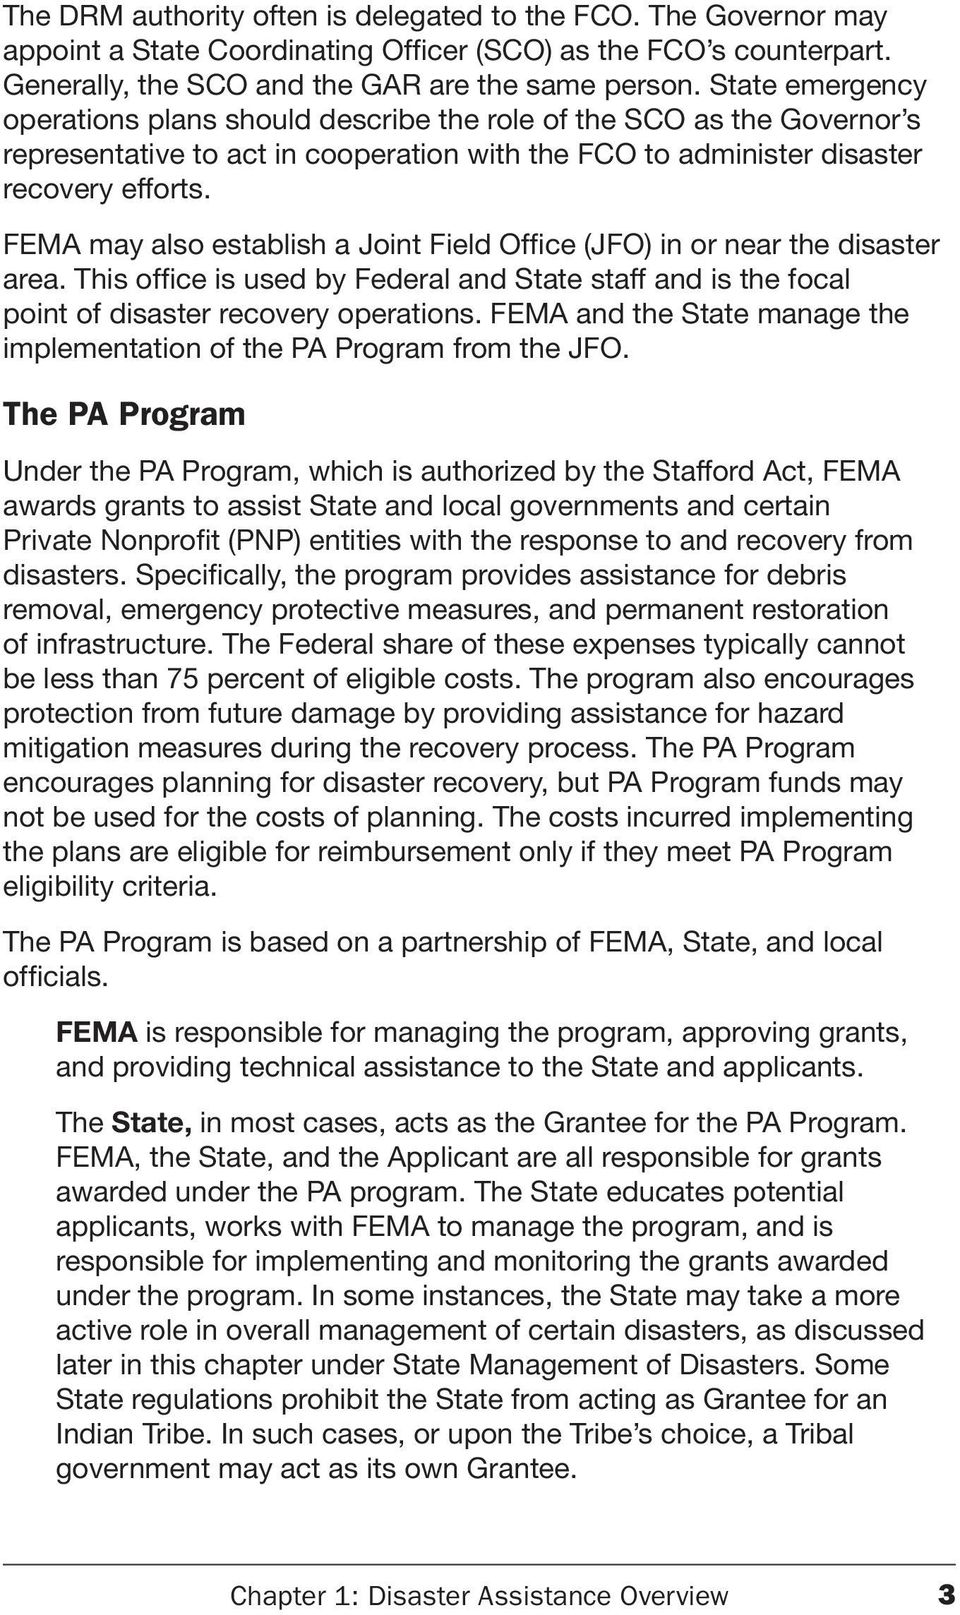 FEMA may also establish a Joint Field Office (JFO) in or near the disaster area. This office is used by Federal and State staff and is the focal point of disaster recovery operations.